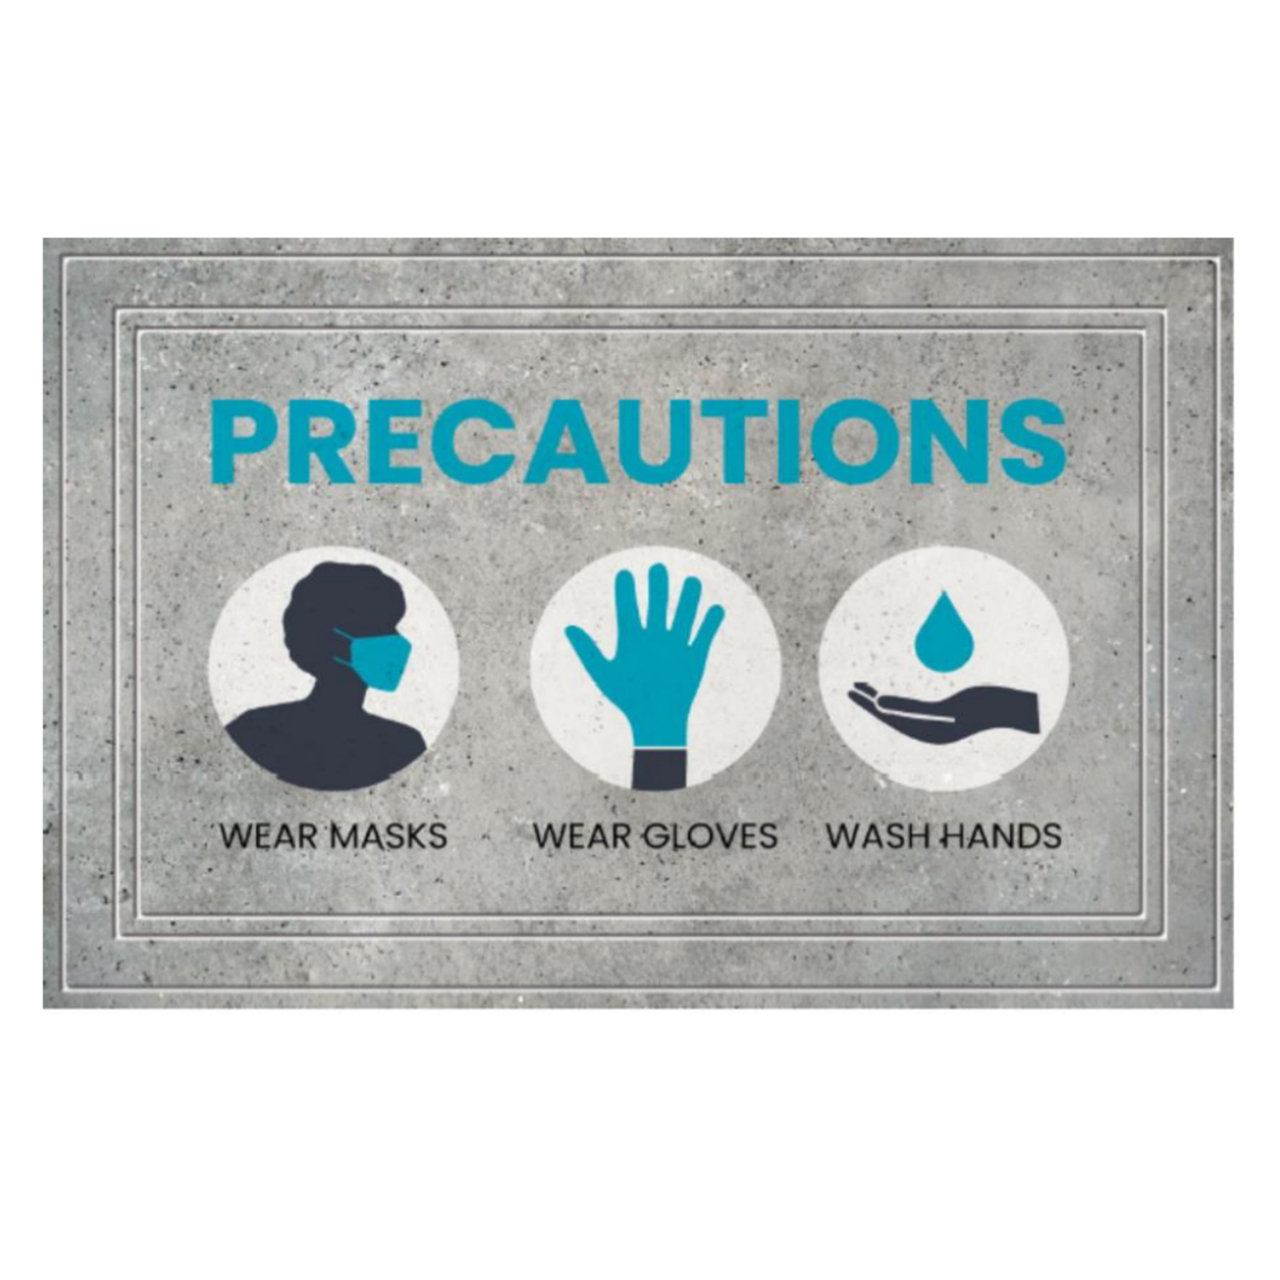 "SANIGUARD Germ Protection Awareness Rubber Molded Recycled Mat Precautions Grey 24"" x 36"""